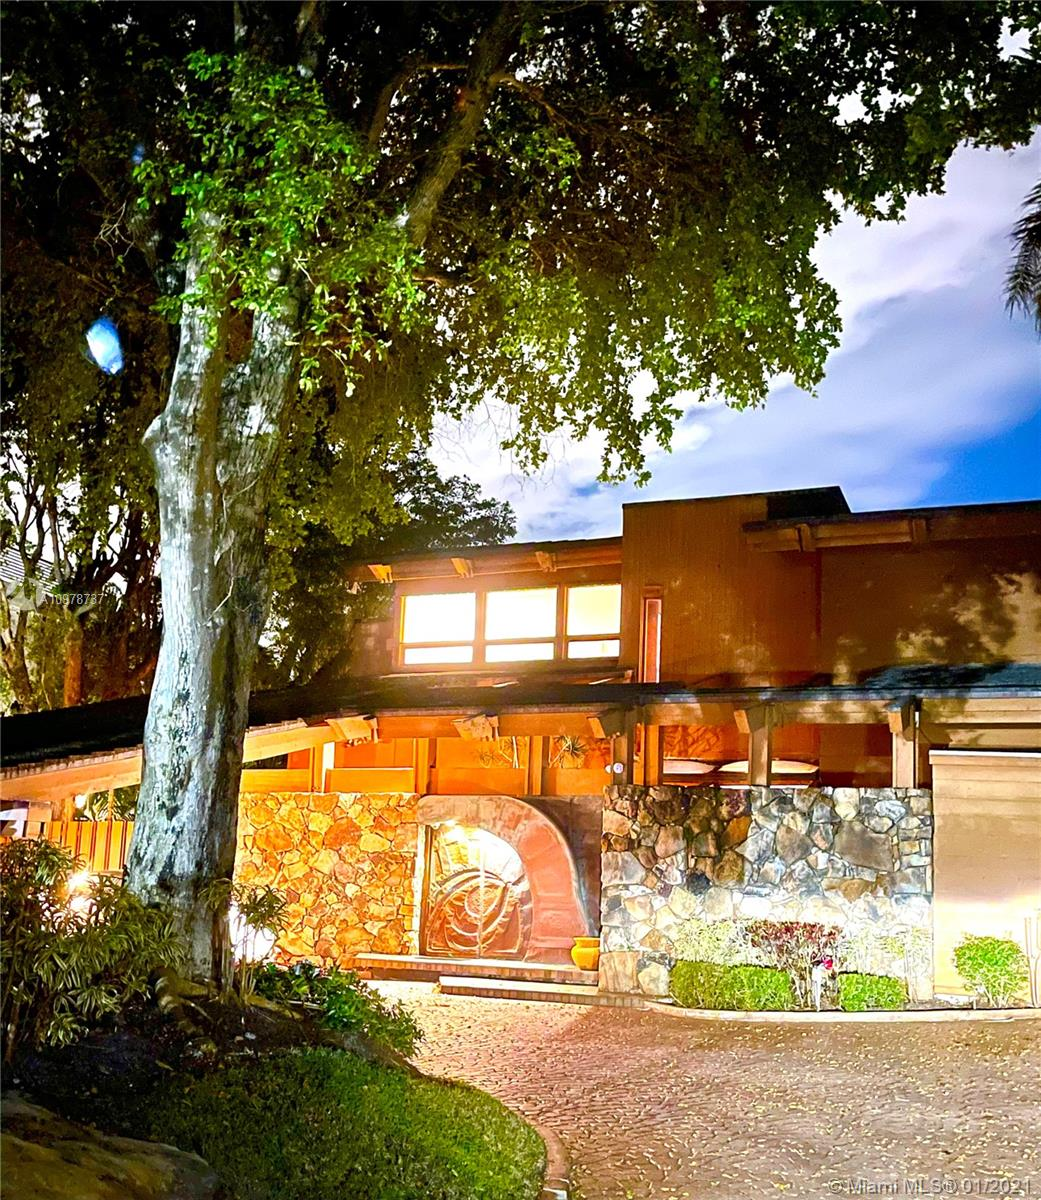 Prime sought after prestigious Bay Harbor Island estate on an amazing property! A Mid Century One of a kind California Style built in the late 1970s on a spacious lot of over 14,000 sf approximately 180 x 80 amazing wide bay view! Highest elevation seawall & 50ft dockage with elevator lift. Create your own masterpiece here....Renovate or build your dream estate...P Walking distance to the beach, and world famous Bal Harbour Shops, among  restaurants, Hotels and more all on Kane Concourse,  Also in Walking distance an A rated Ruth K Broad elementary school. Peace, privacy and tranquility.  Please contact the listing agent for more info.